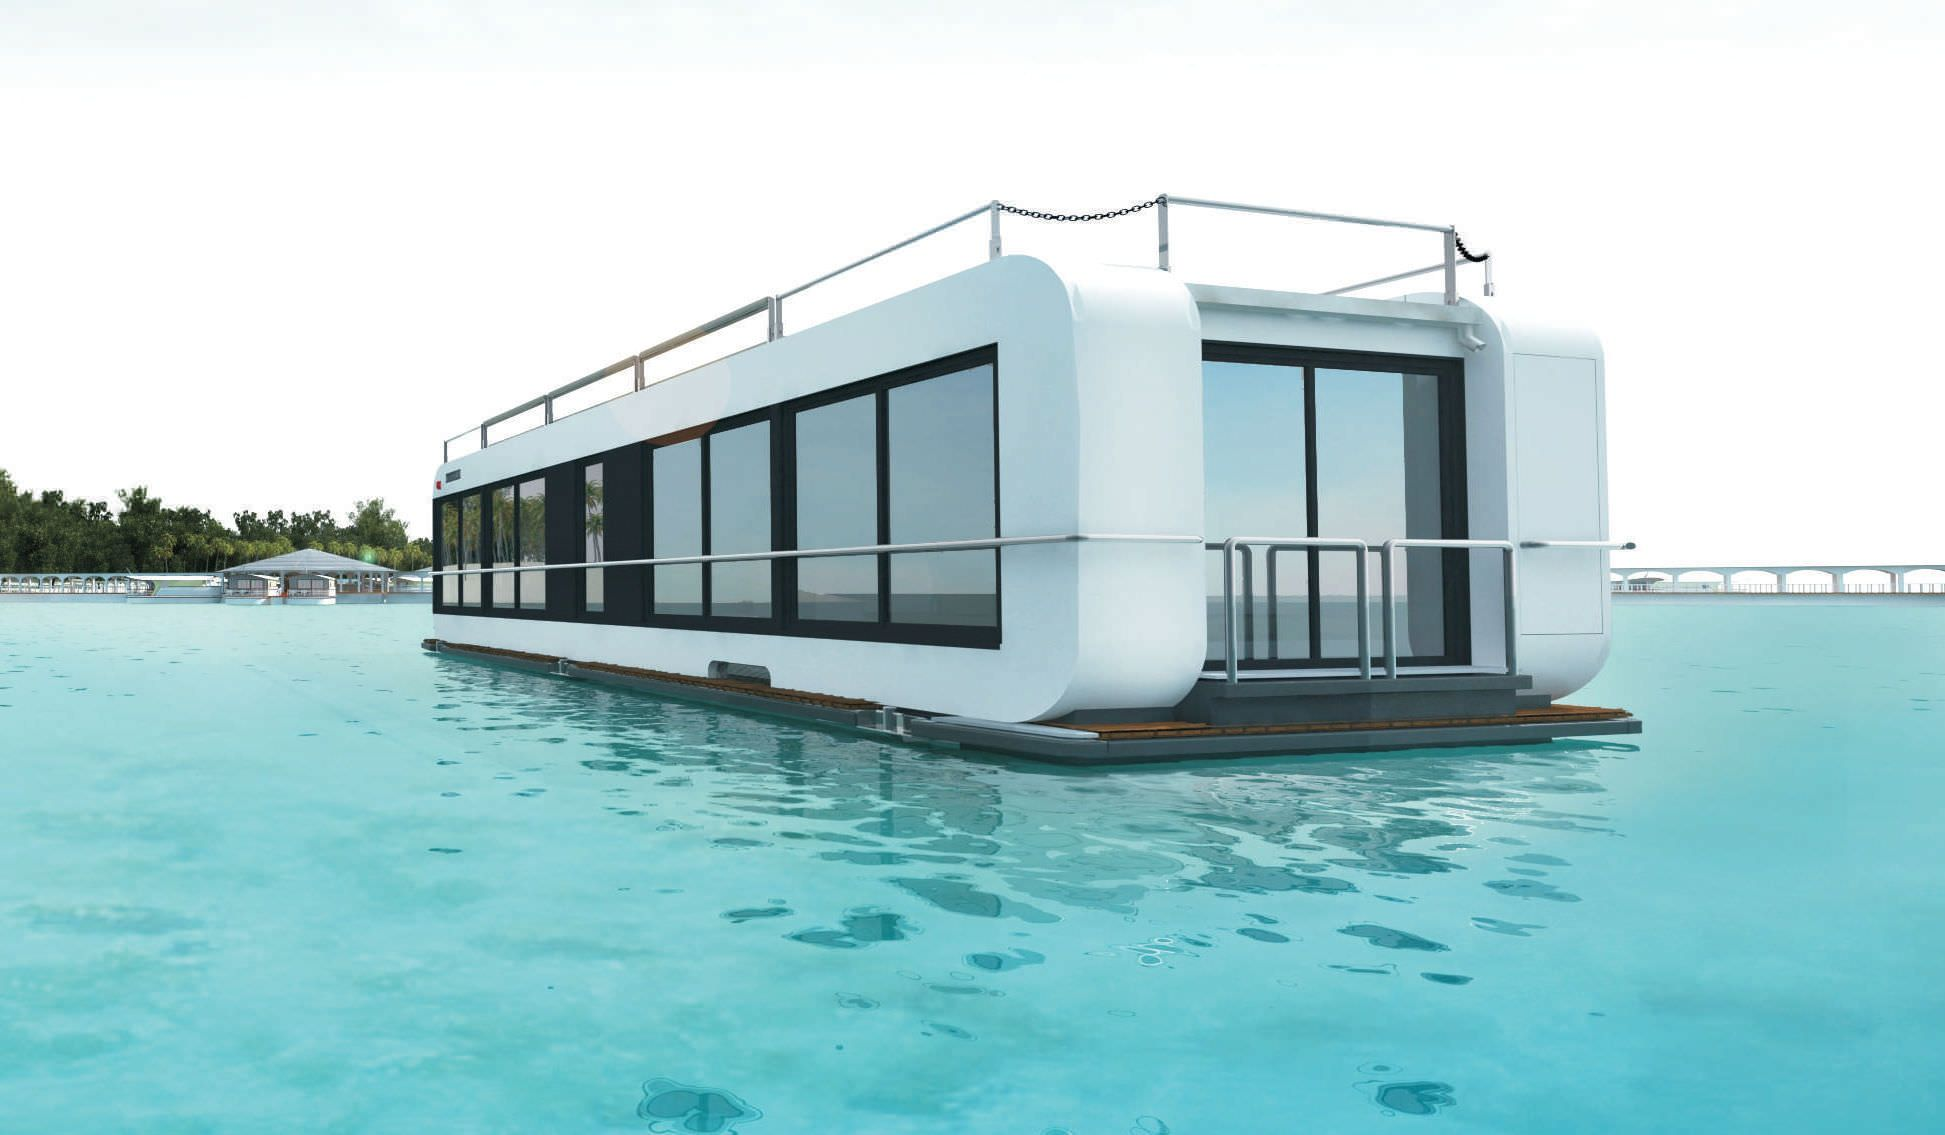 Floating House Contemporary Two Floor Energy Efficient Proreta ... on warehouse designs, boat architecture, beach designs, bank designs, boat lift designs, canoe designs, fishing designs, pier designs, boat dock, boat fashion, boat slip designs, boat flowers, island designs, rv designs, unique boat designs, barge designs, zoo designs, homemade houseboat designs, garage designs, road designs,